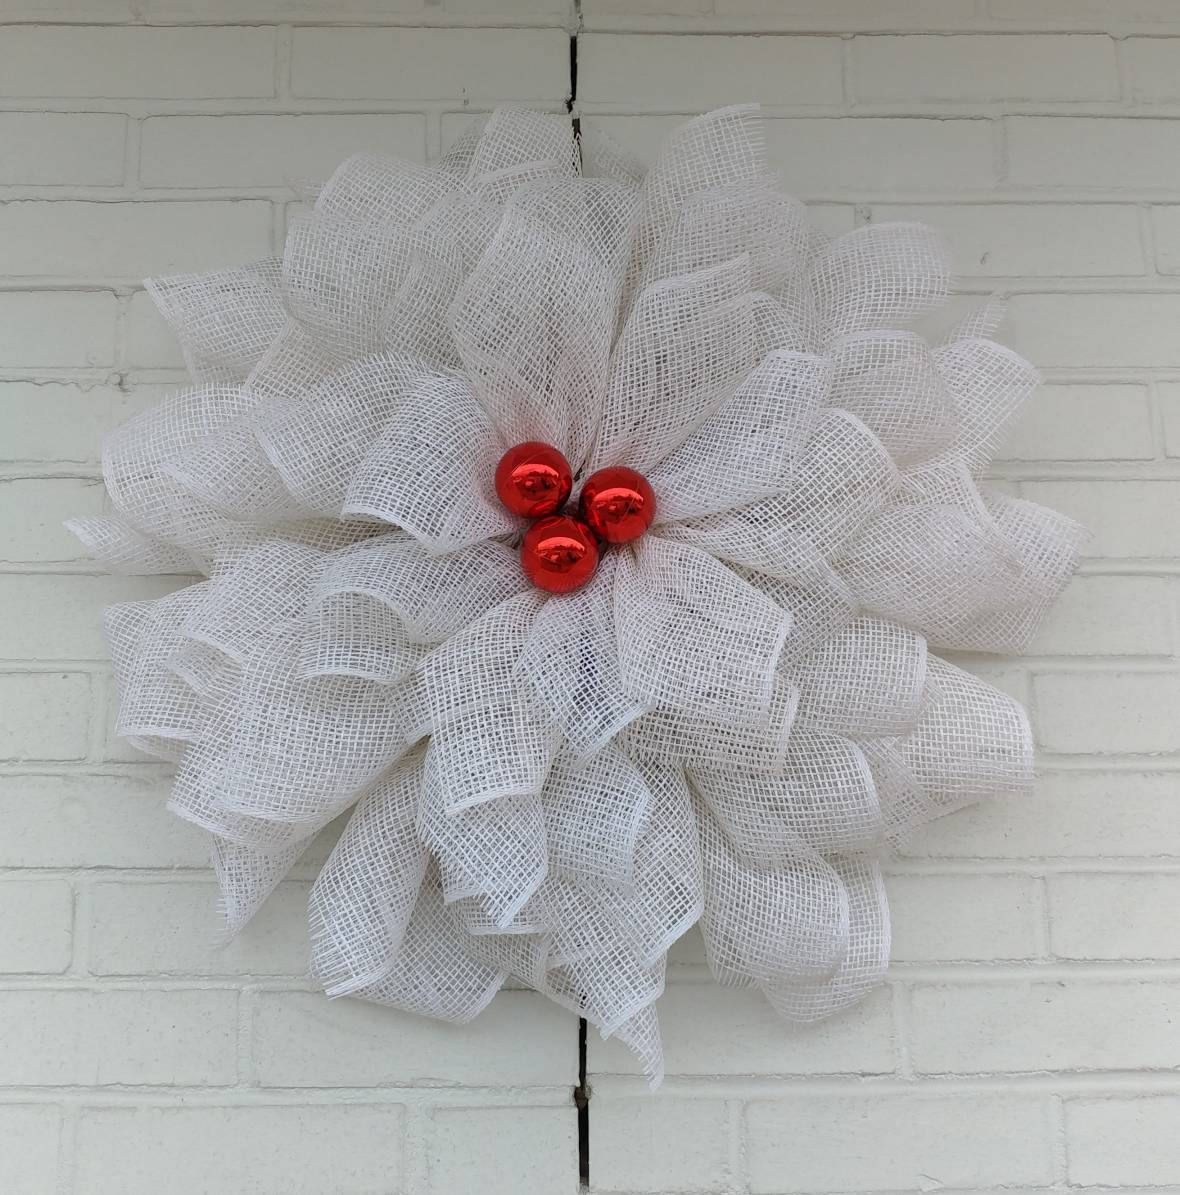 White Poinsettia Wreath with Shiny Red Christmas Ball